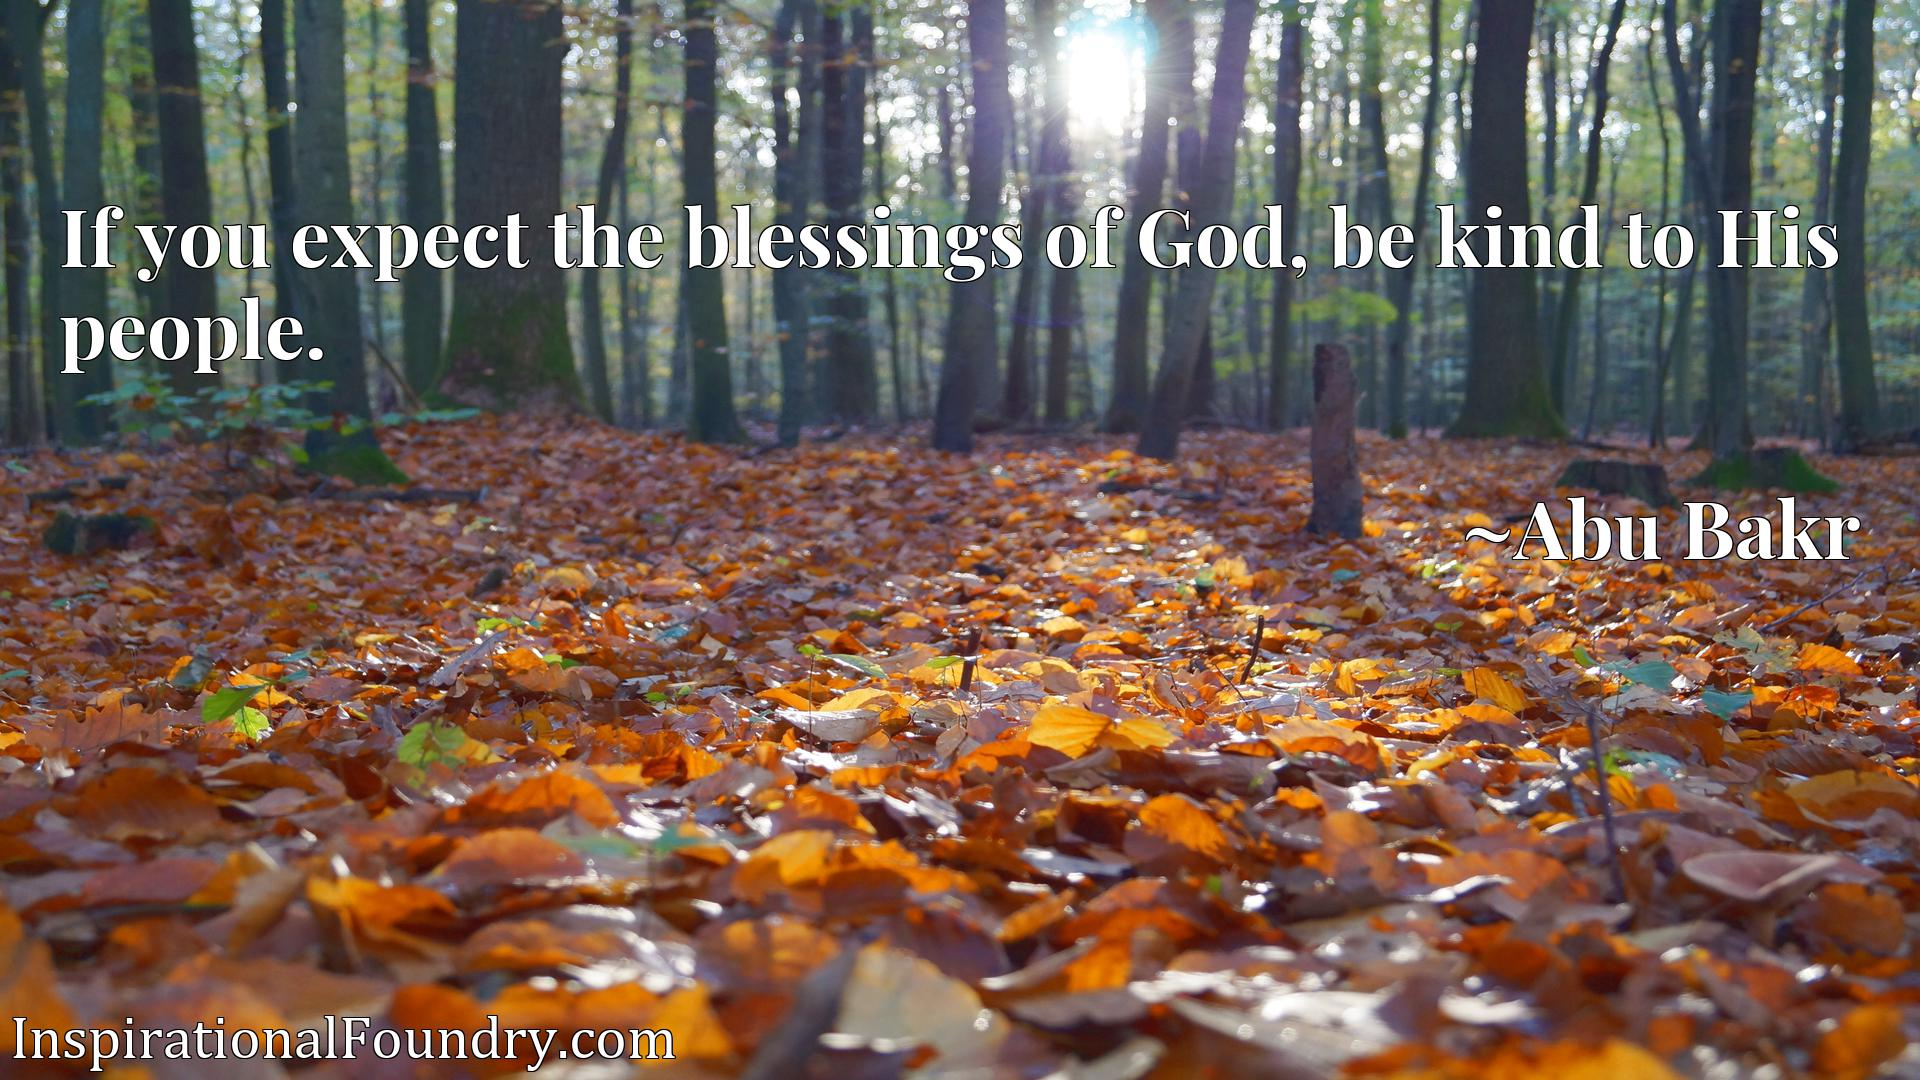 Quote Picture :If you expect the blessings of God, be kind to His people.